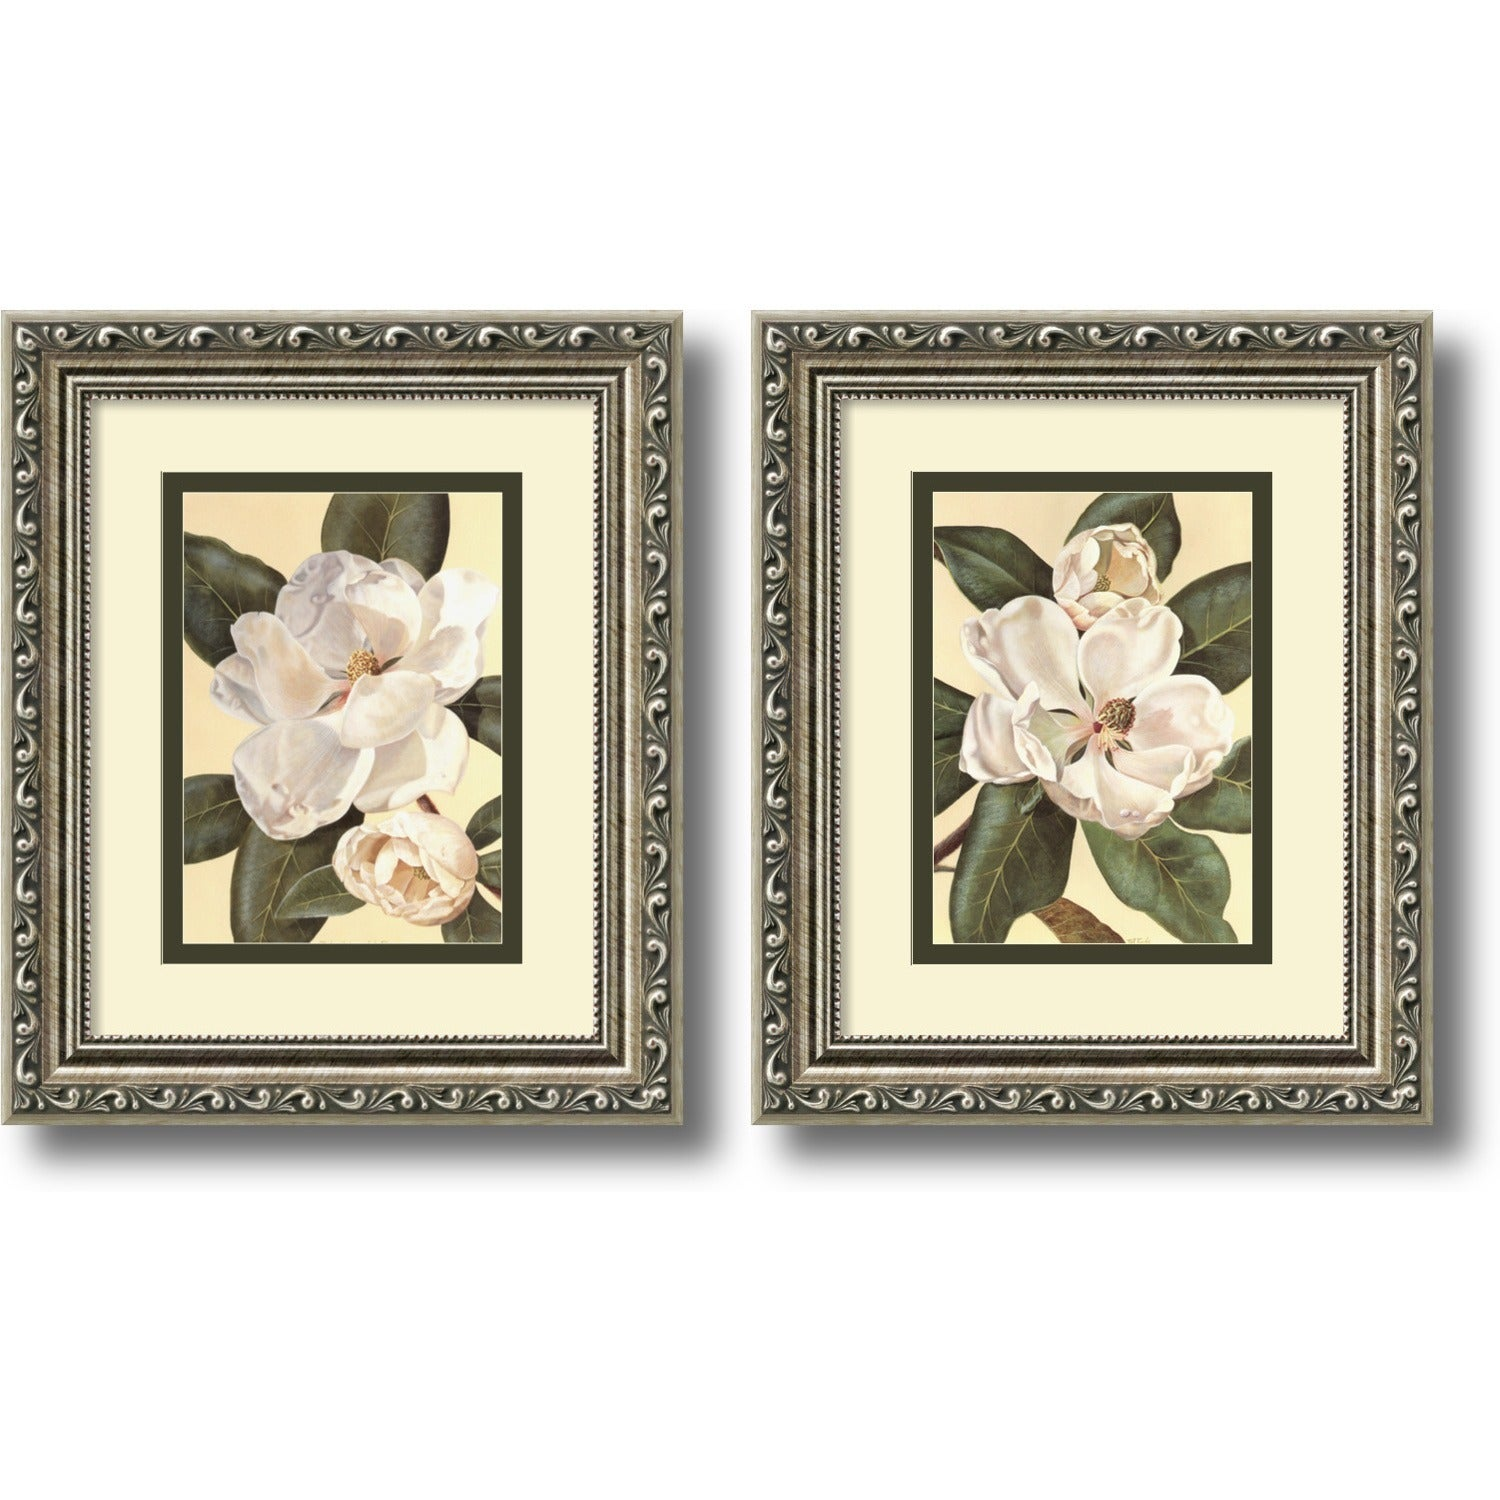 Framed Art Print \'Magnolias - set of 2\' by Waltraud Fuchs Von ...